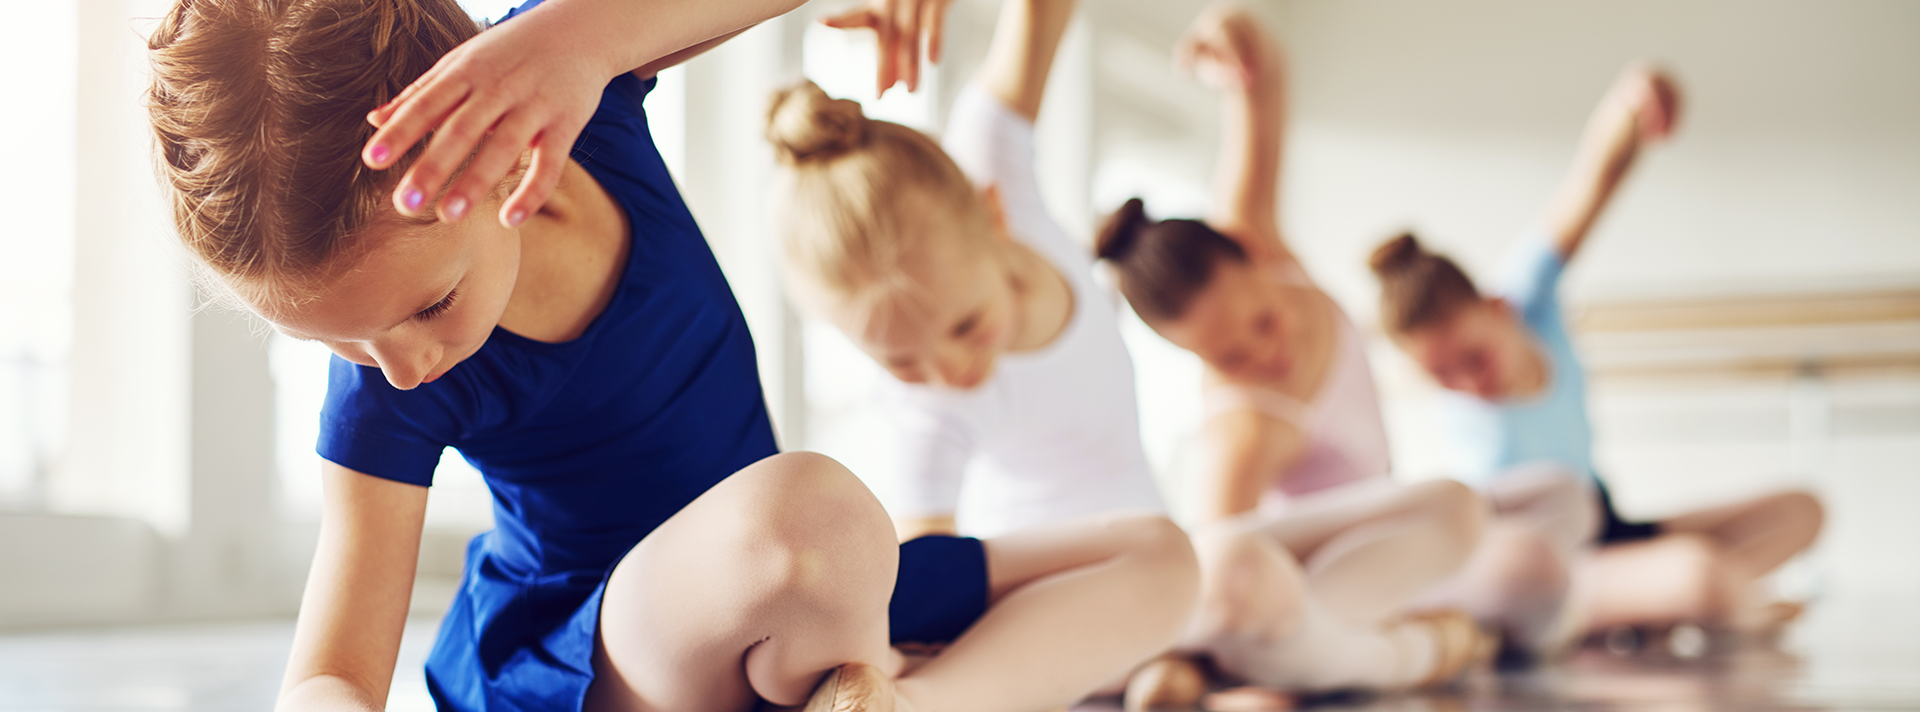 Dance Classes with a Fun, Enriching and Rewarding Experience<br /> for Kids & Adults